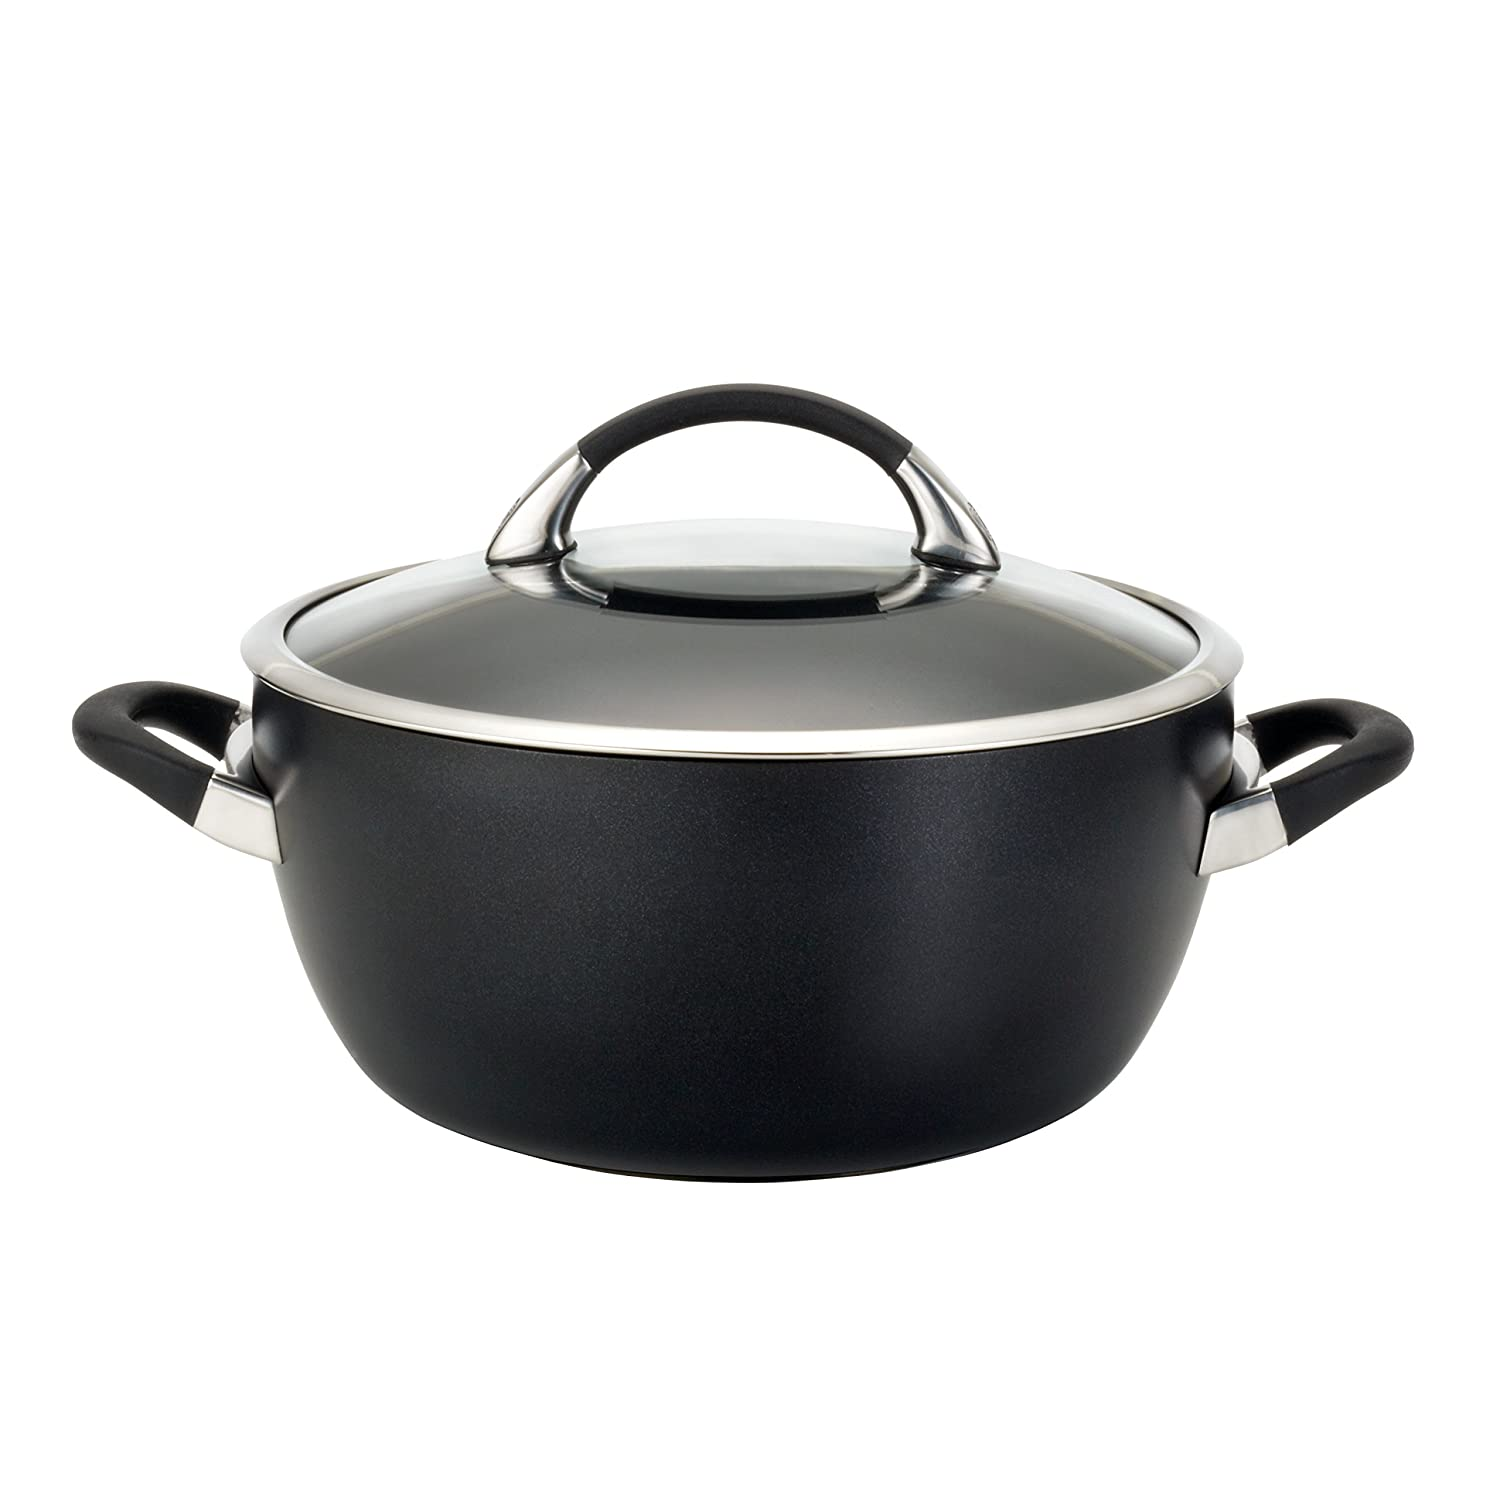 Circulon Symmetry Chocolate Hard Anodized Nonstick 5.5-Qt. Covered Casserole Meyer 82769